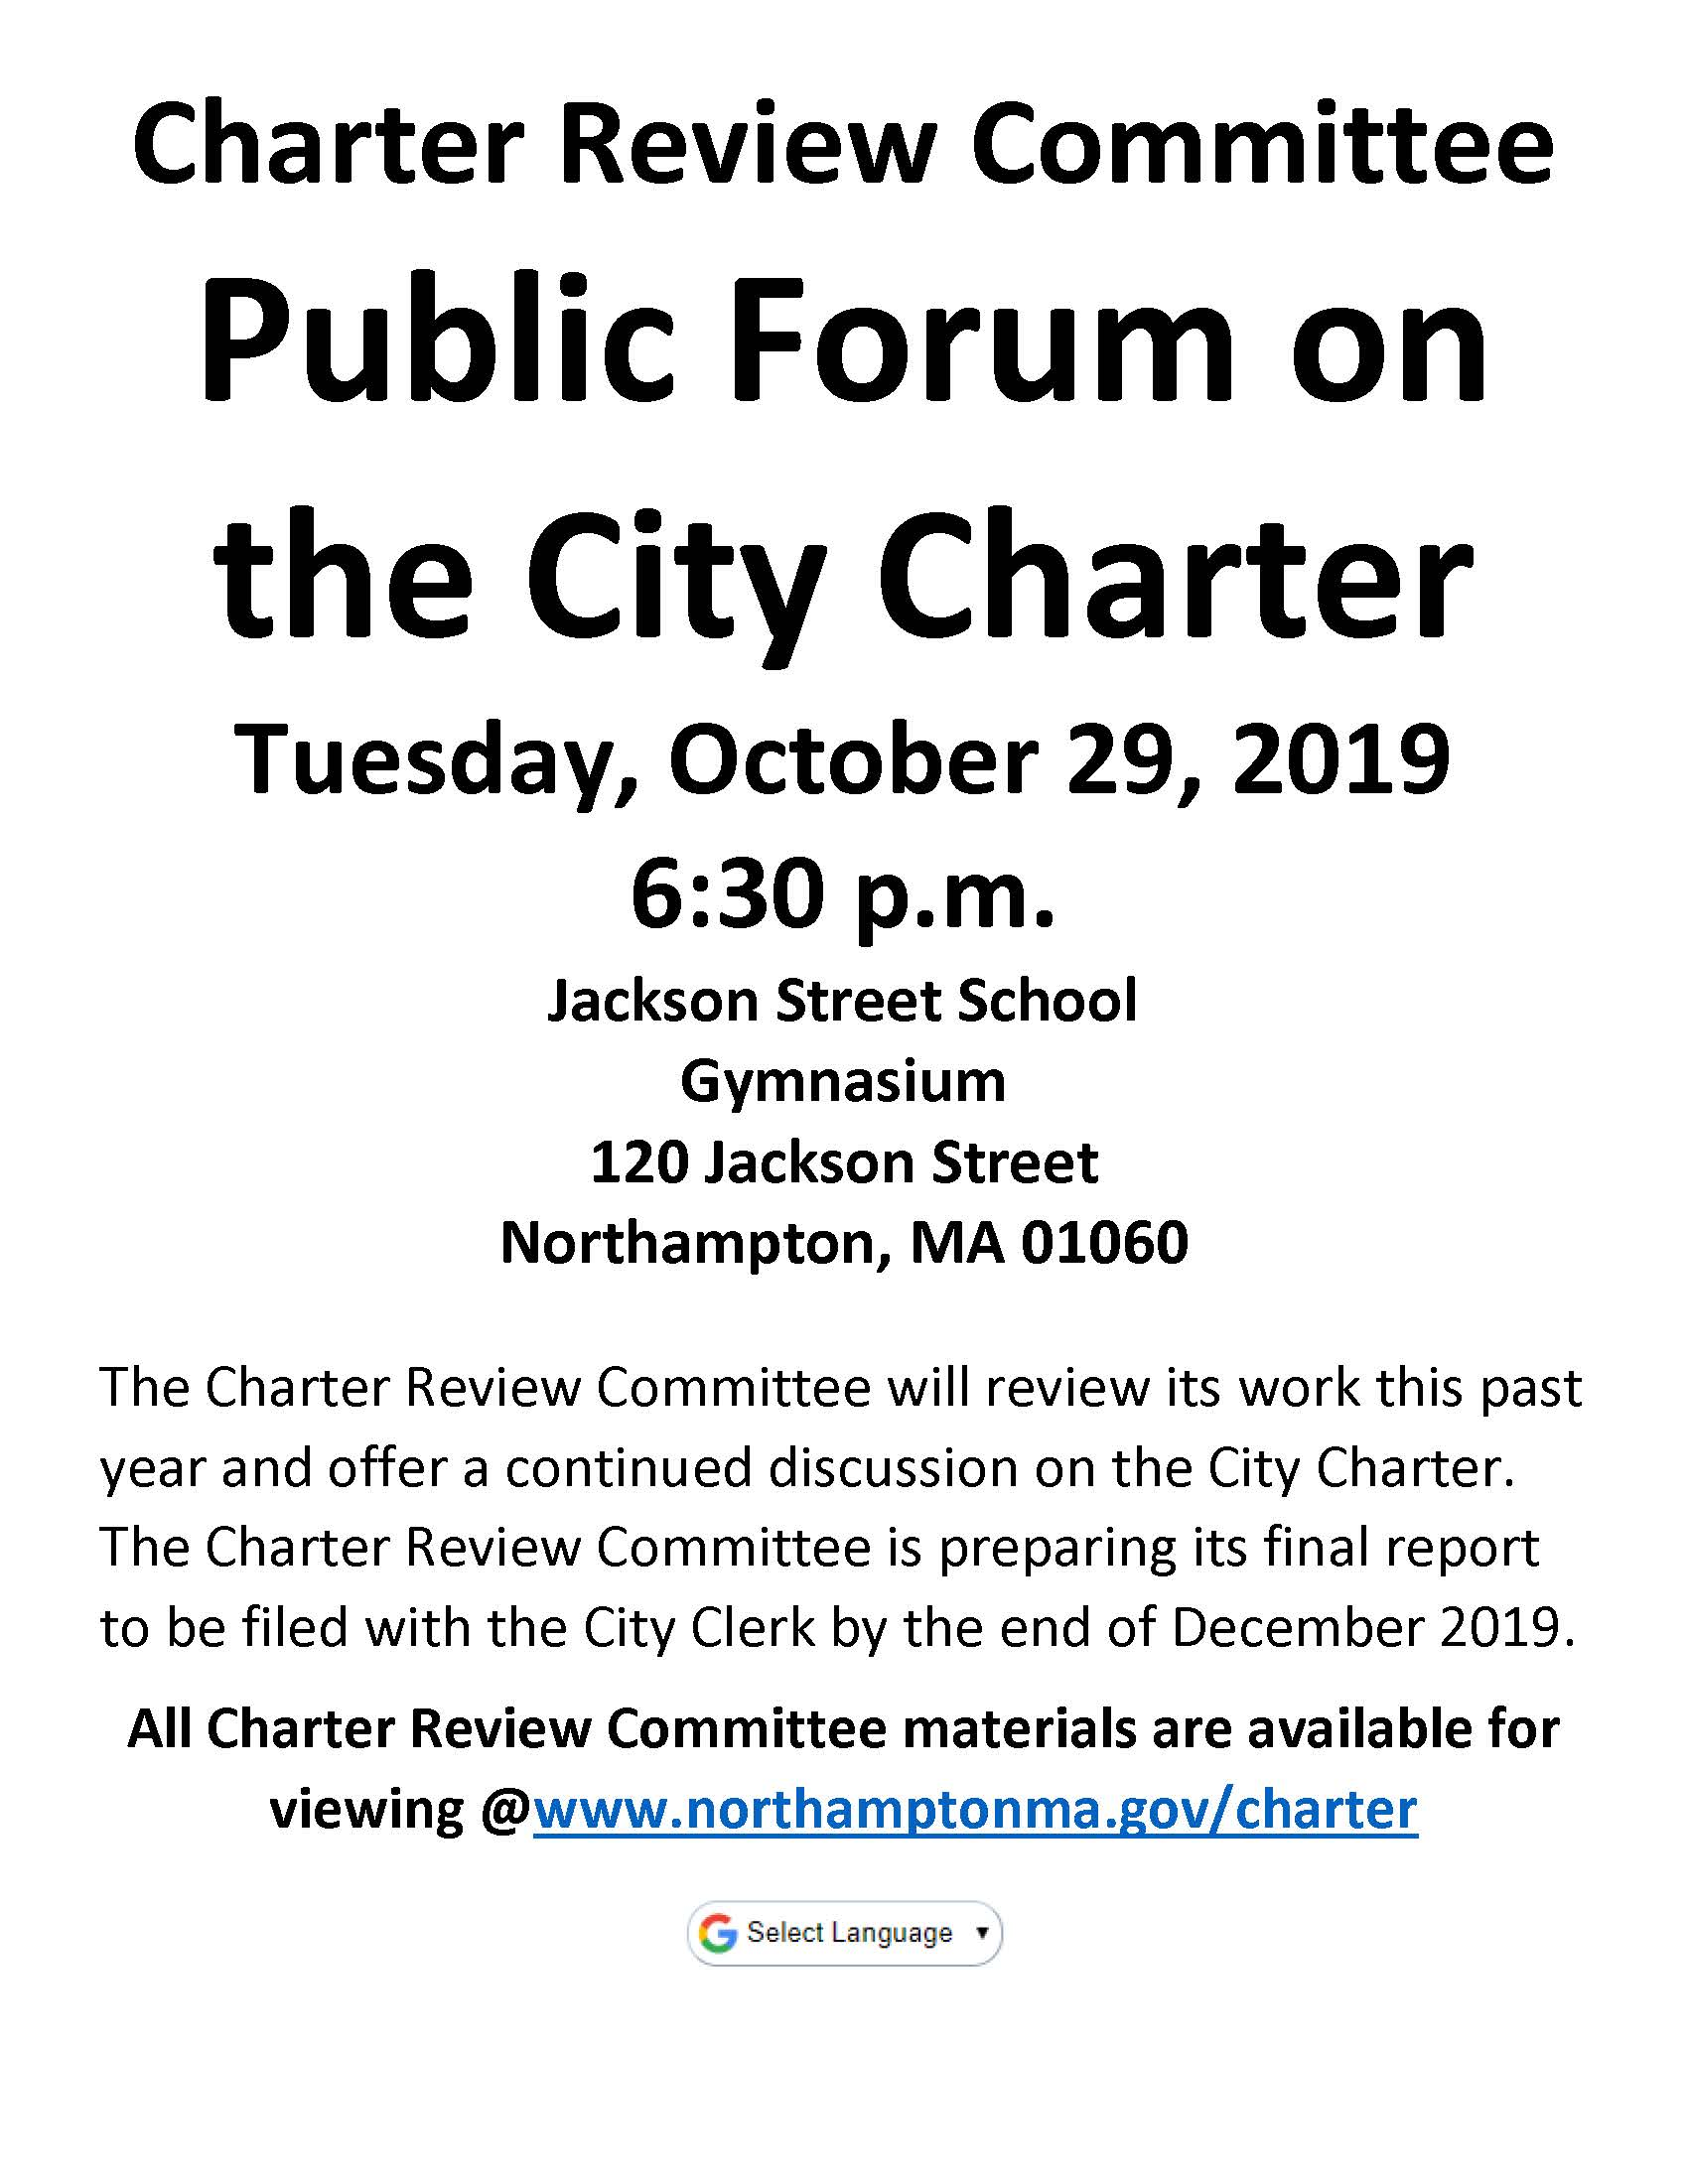 Image of the Charter Review Committee Public Forum on Charter flyer